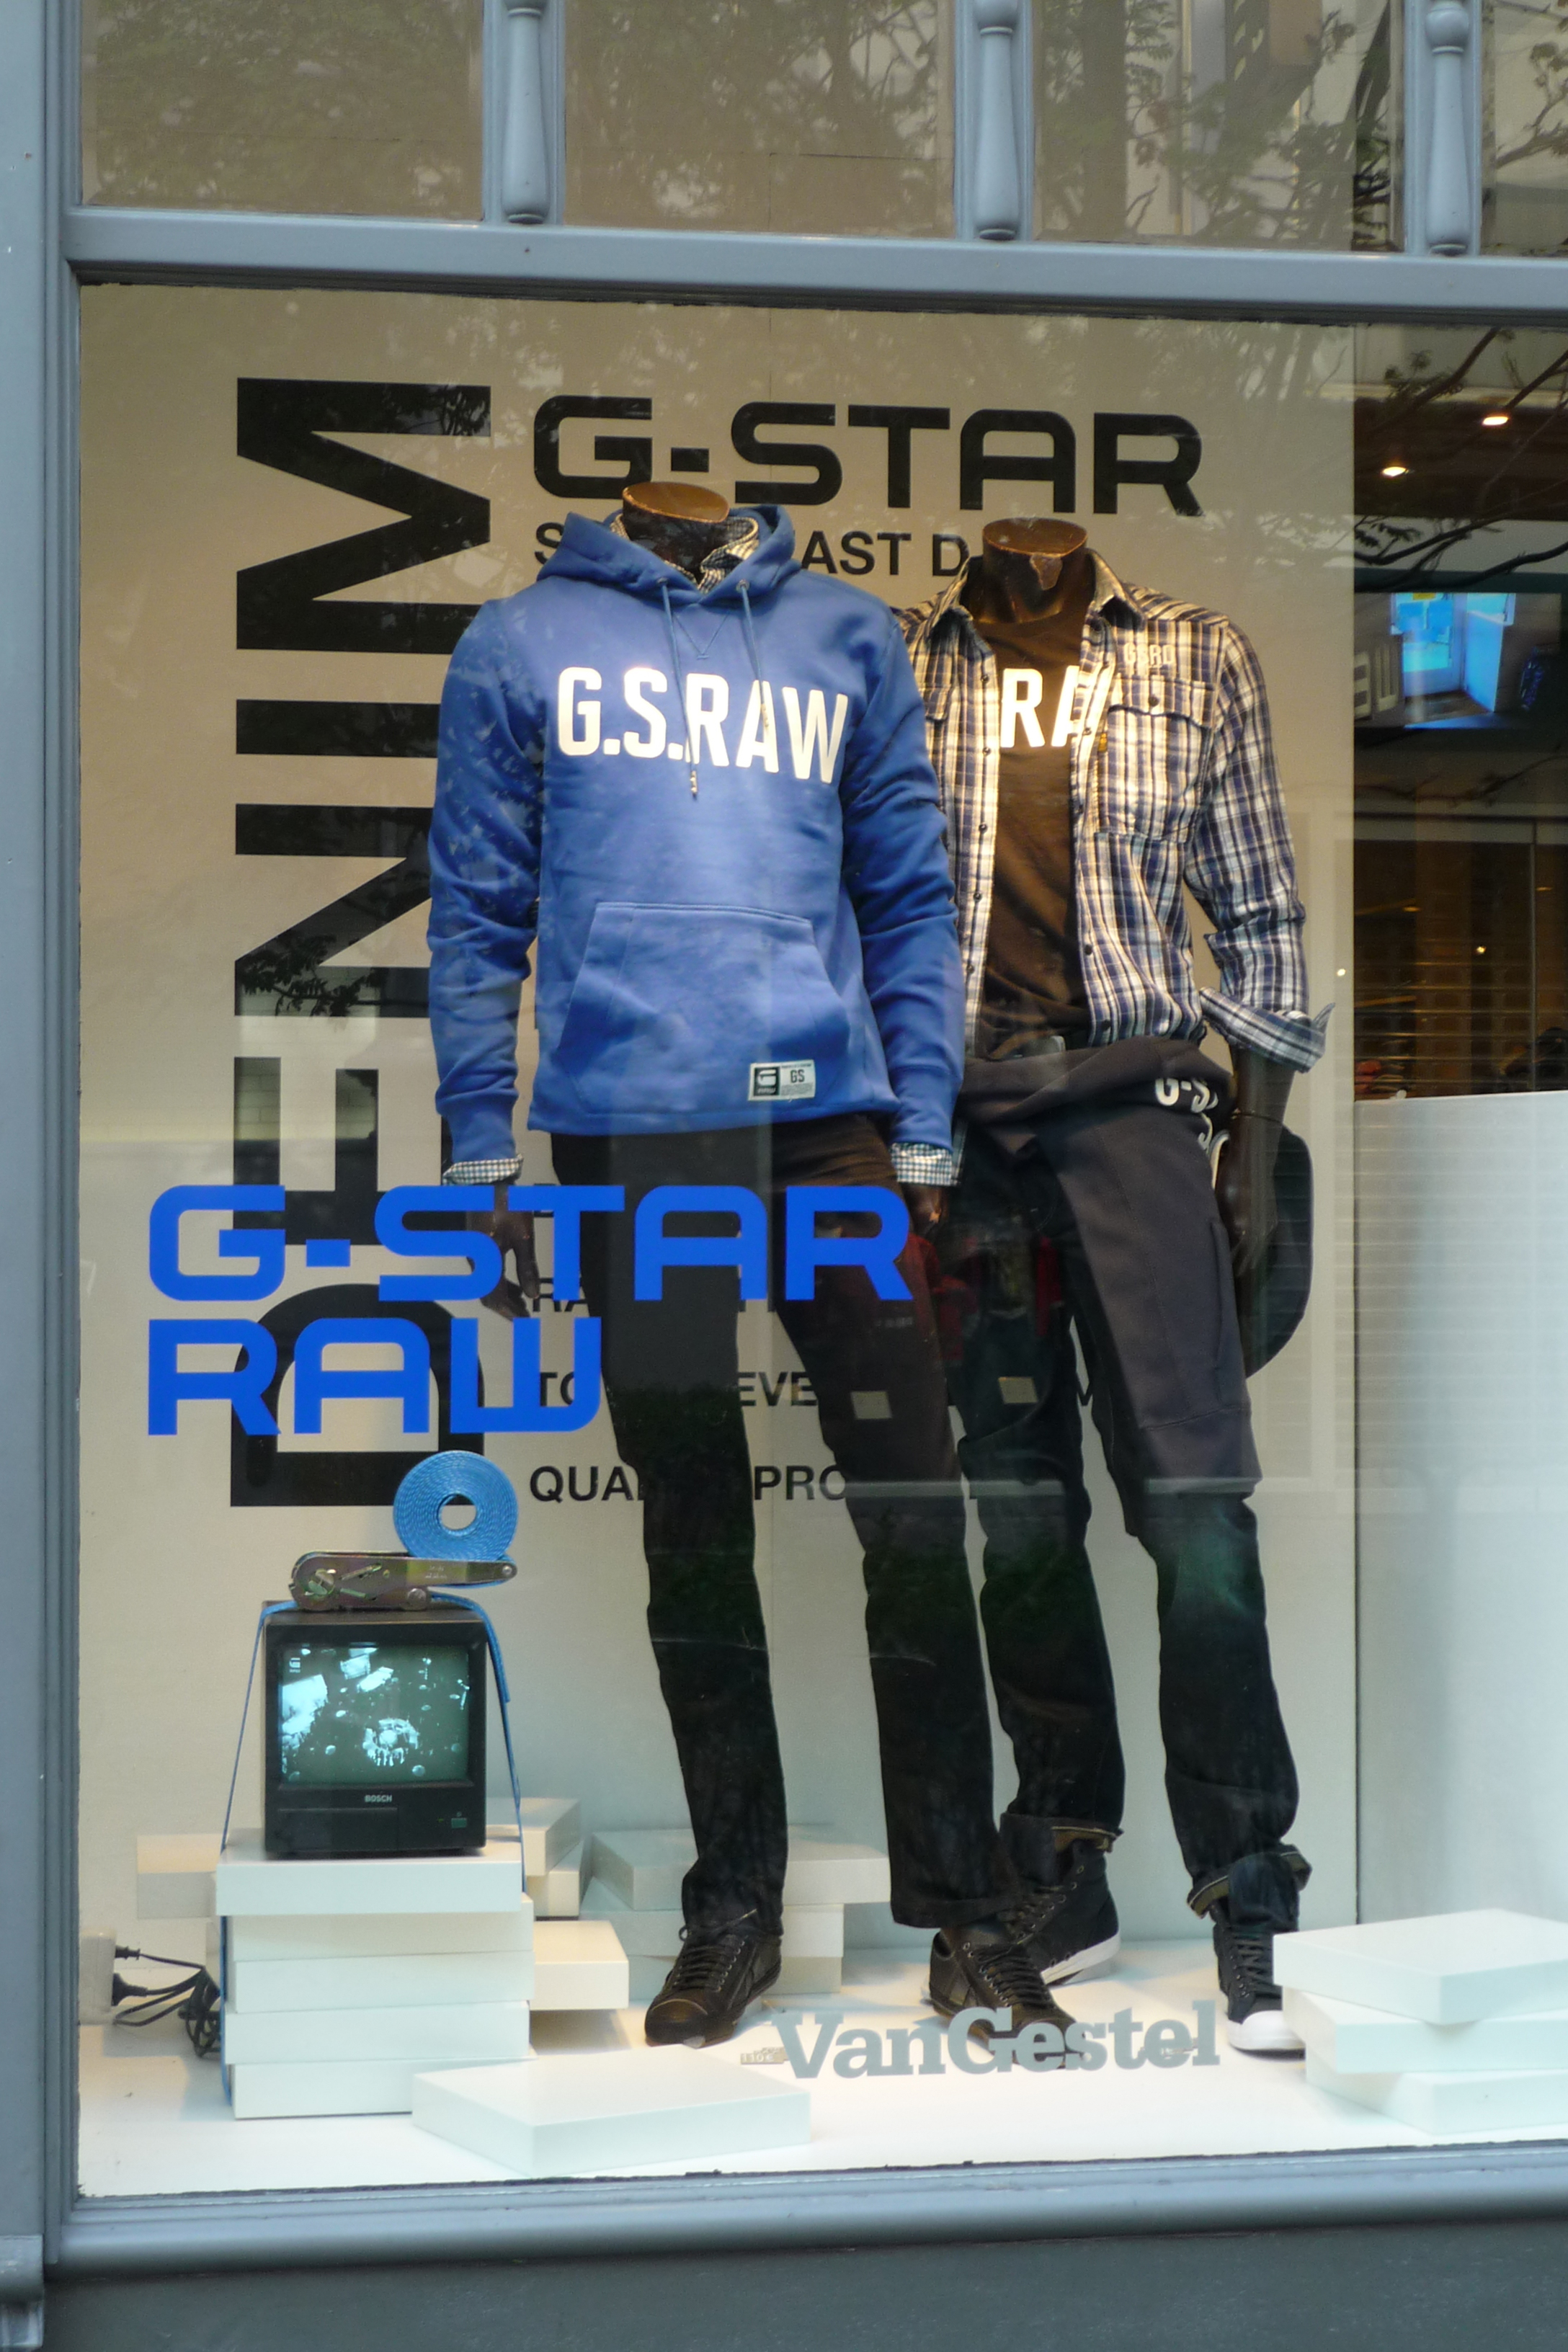 - G STAR RAW windowWindow with custom vinyl stickers to enhance the graphic look of the G-STAR brand.